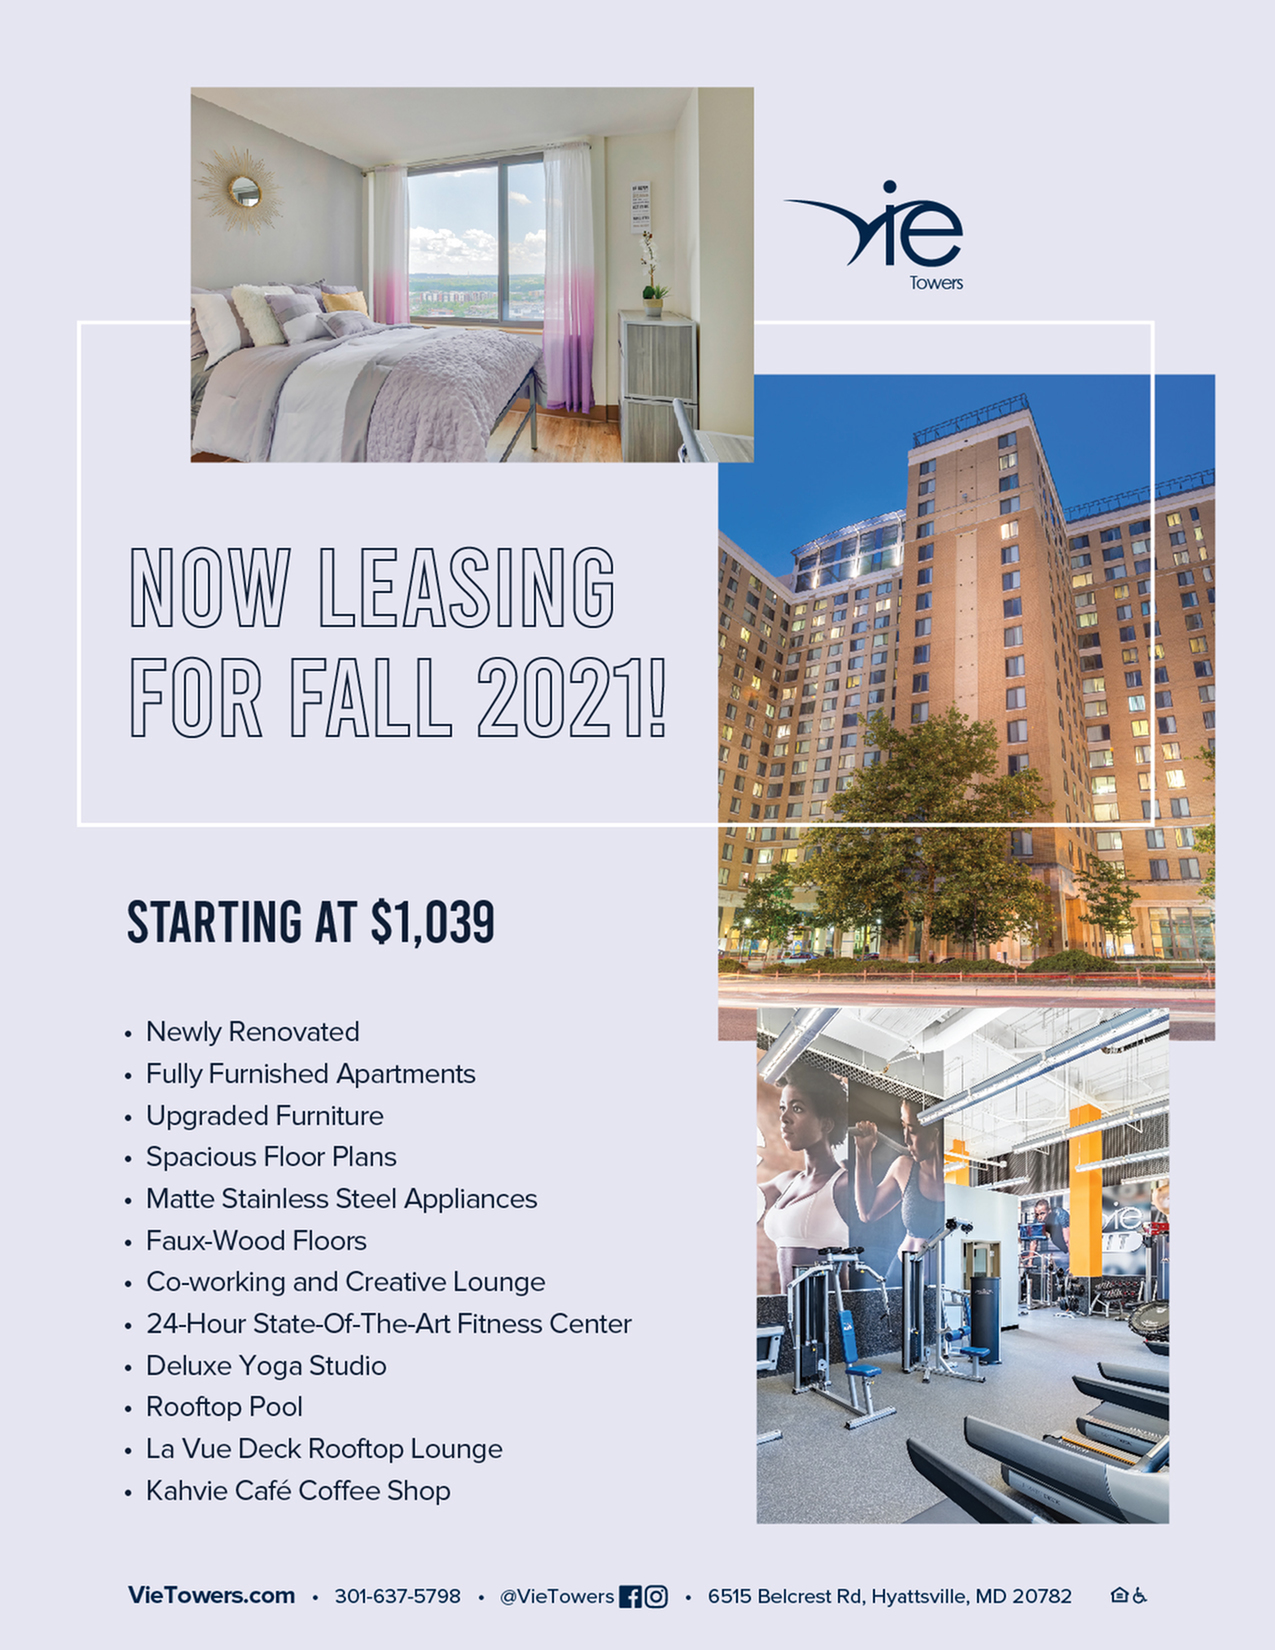 Now Leasing for Fall 2021-image